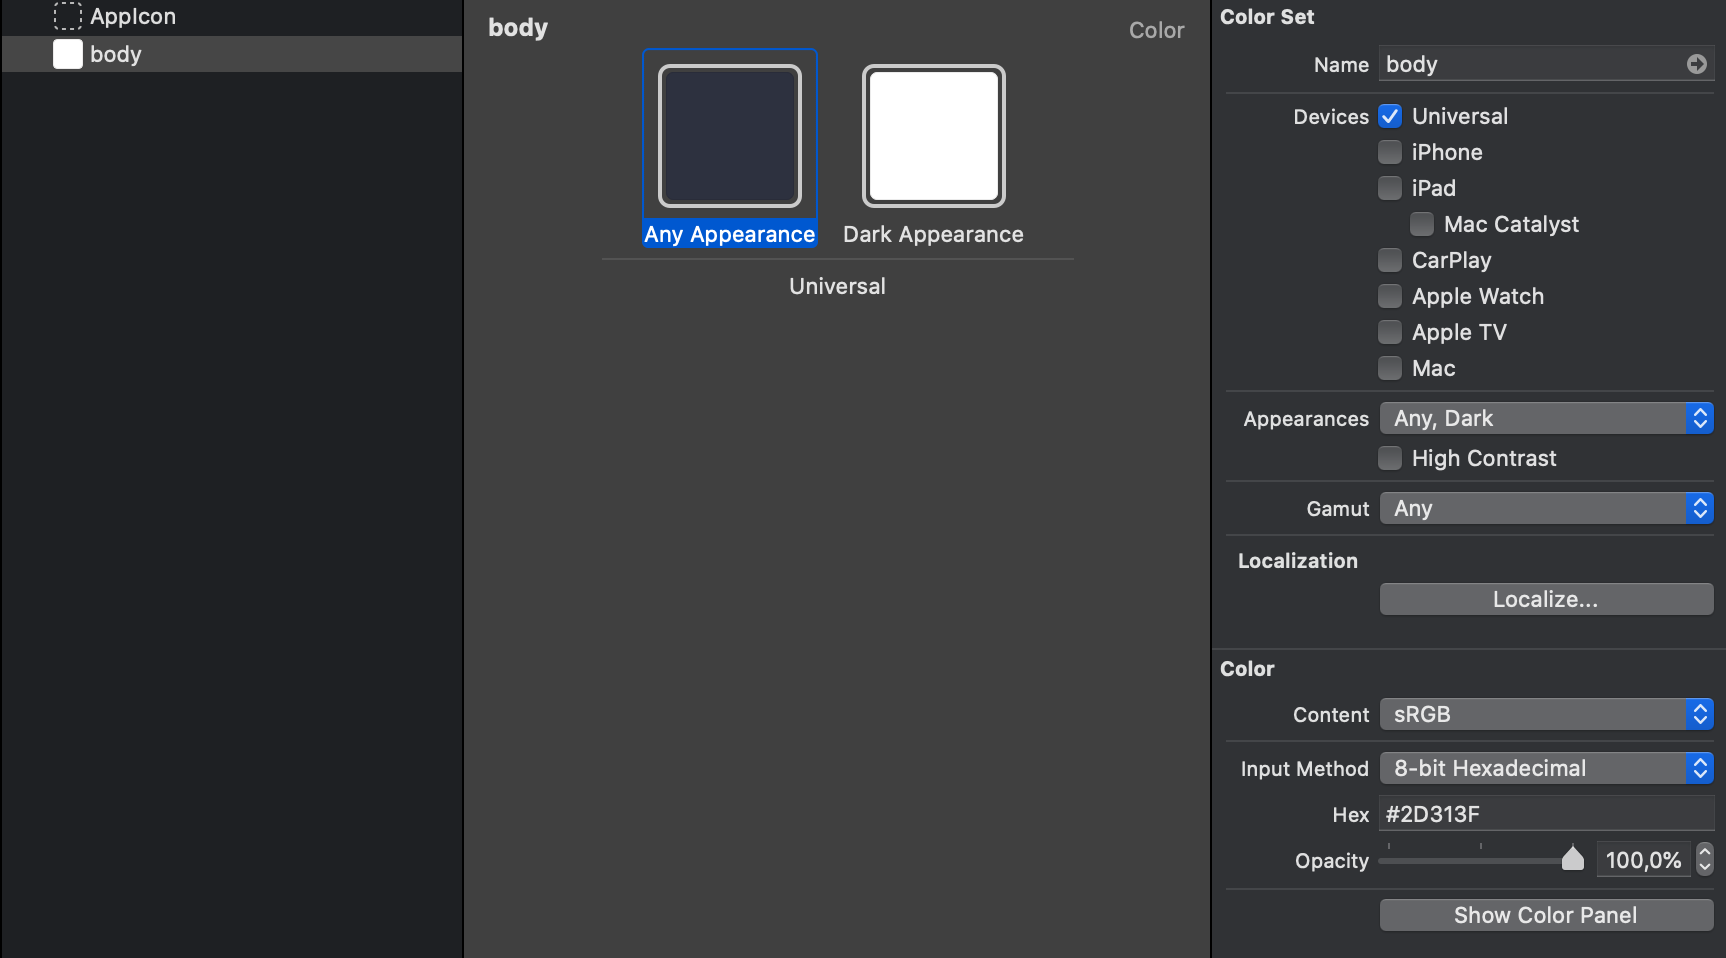 Adding a SwiftUI adaptable color for dark mode